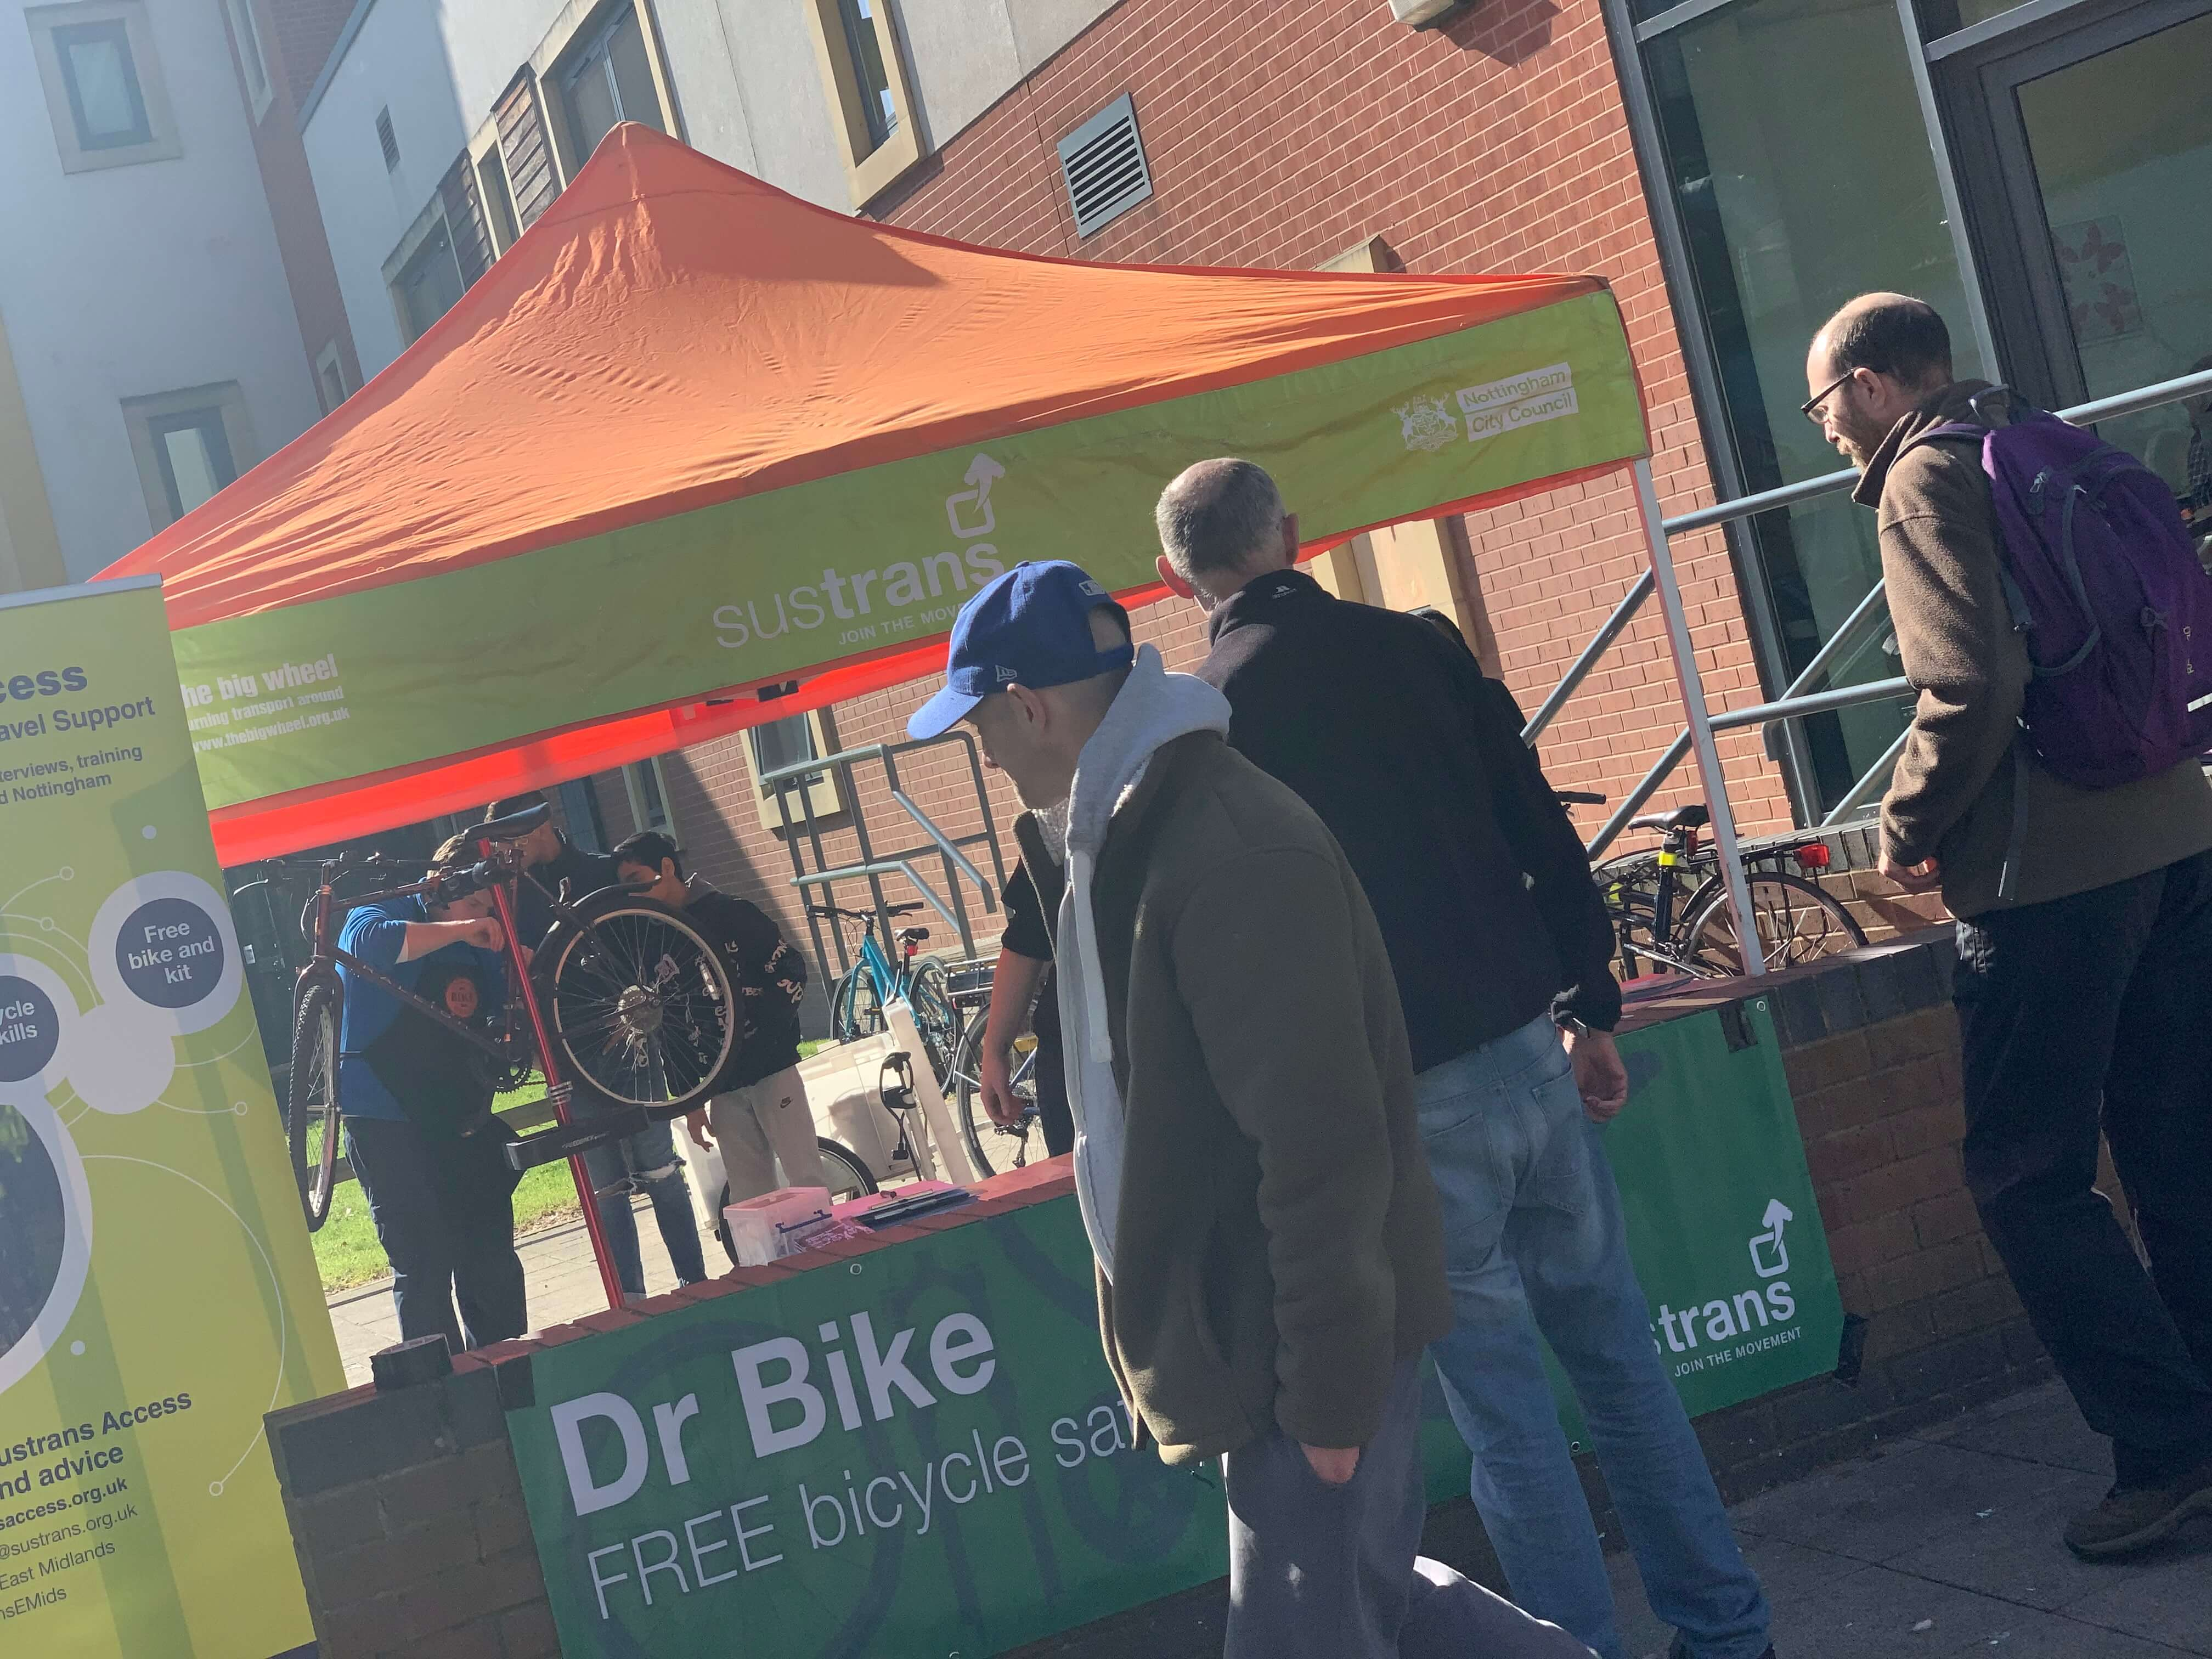 Members of the public attending a Dr.Bike event held at The Mary Potter Health Centre